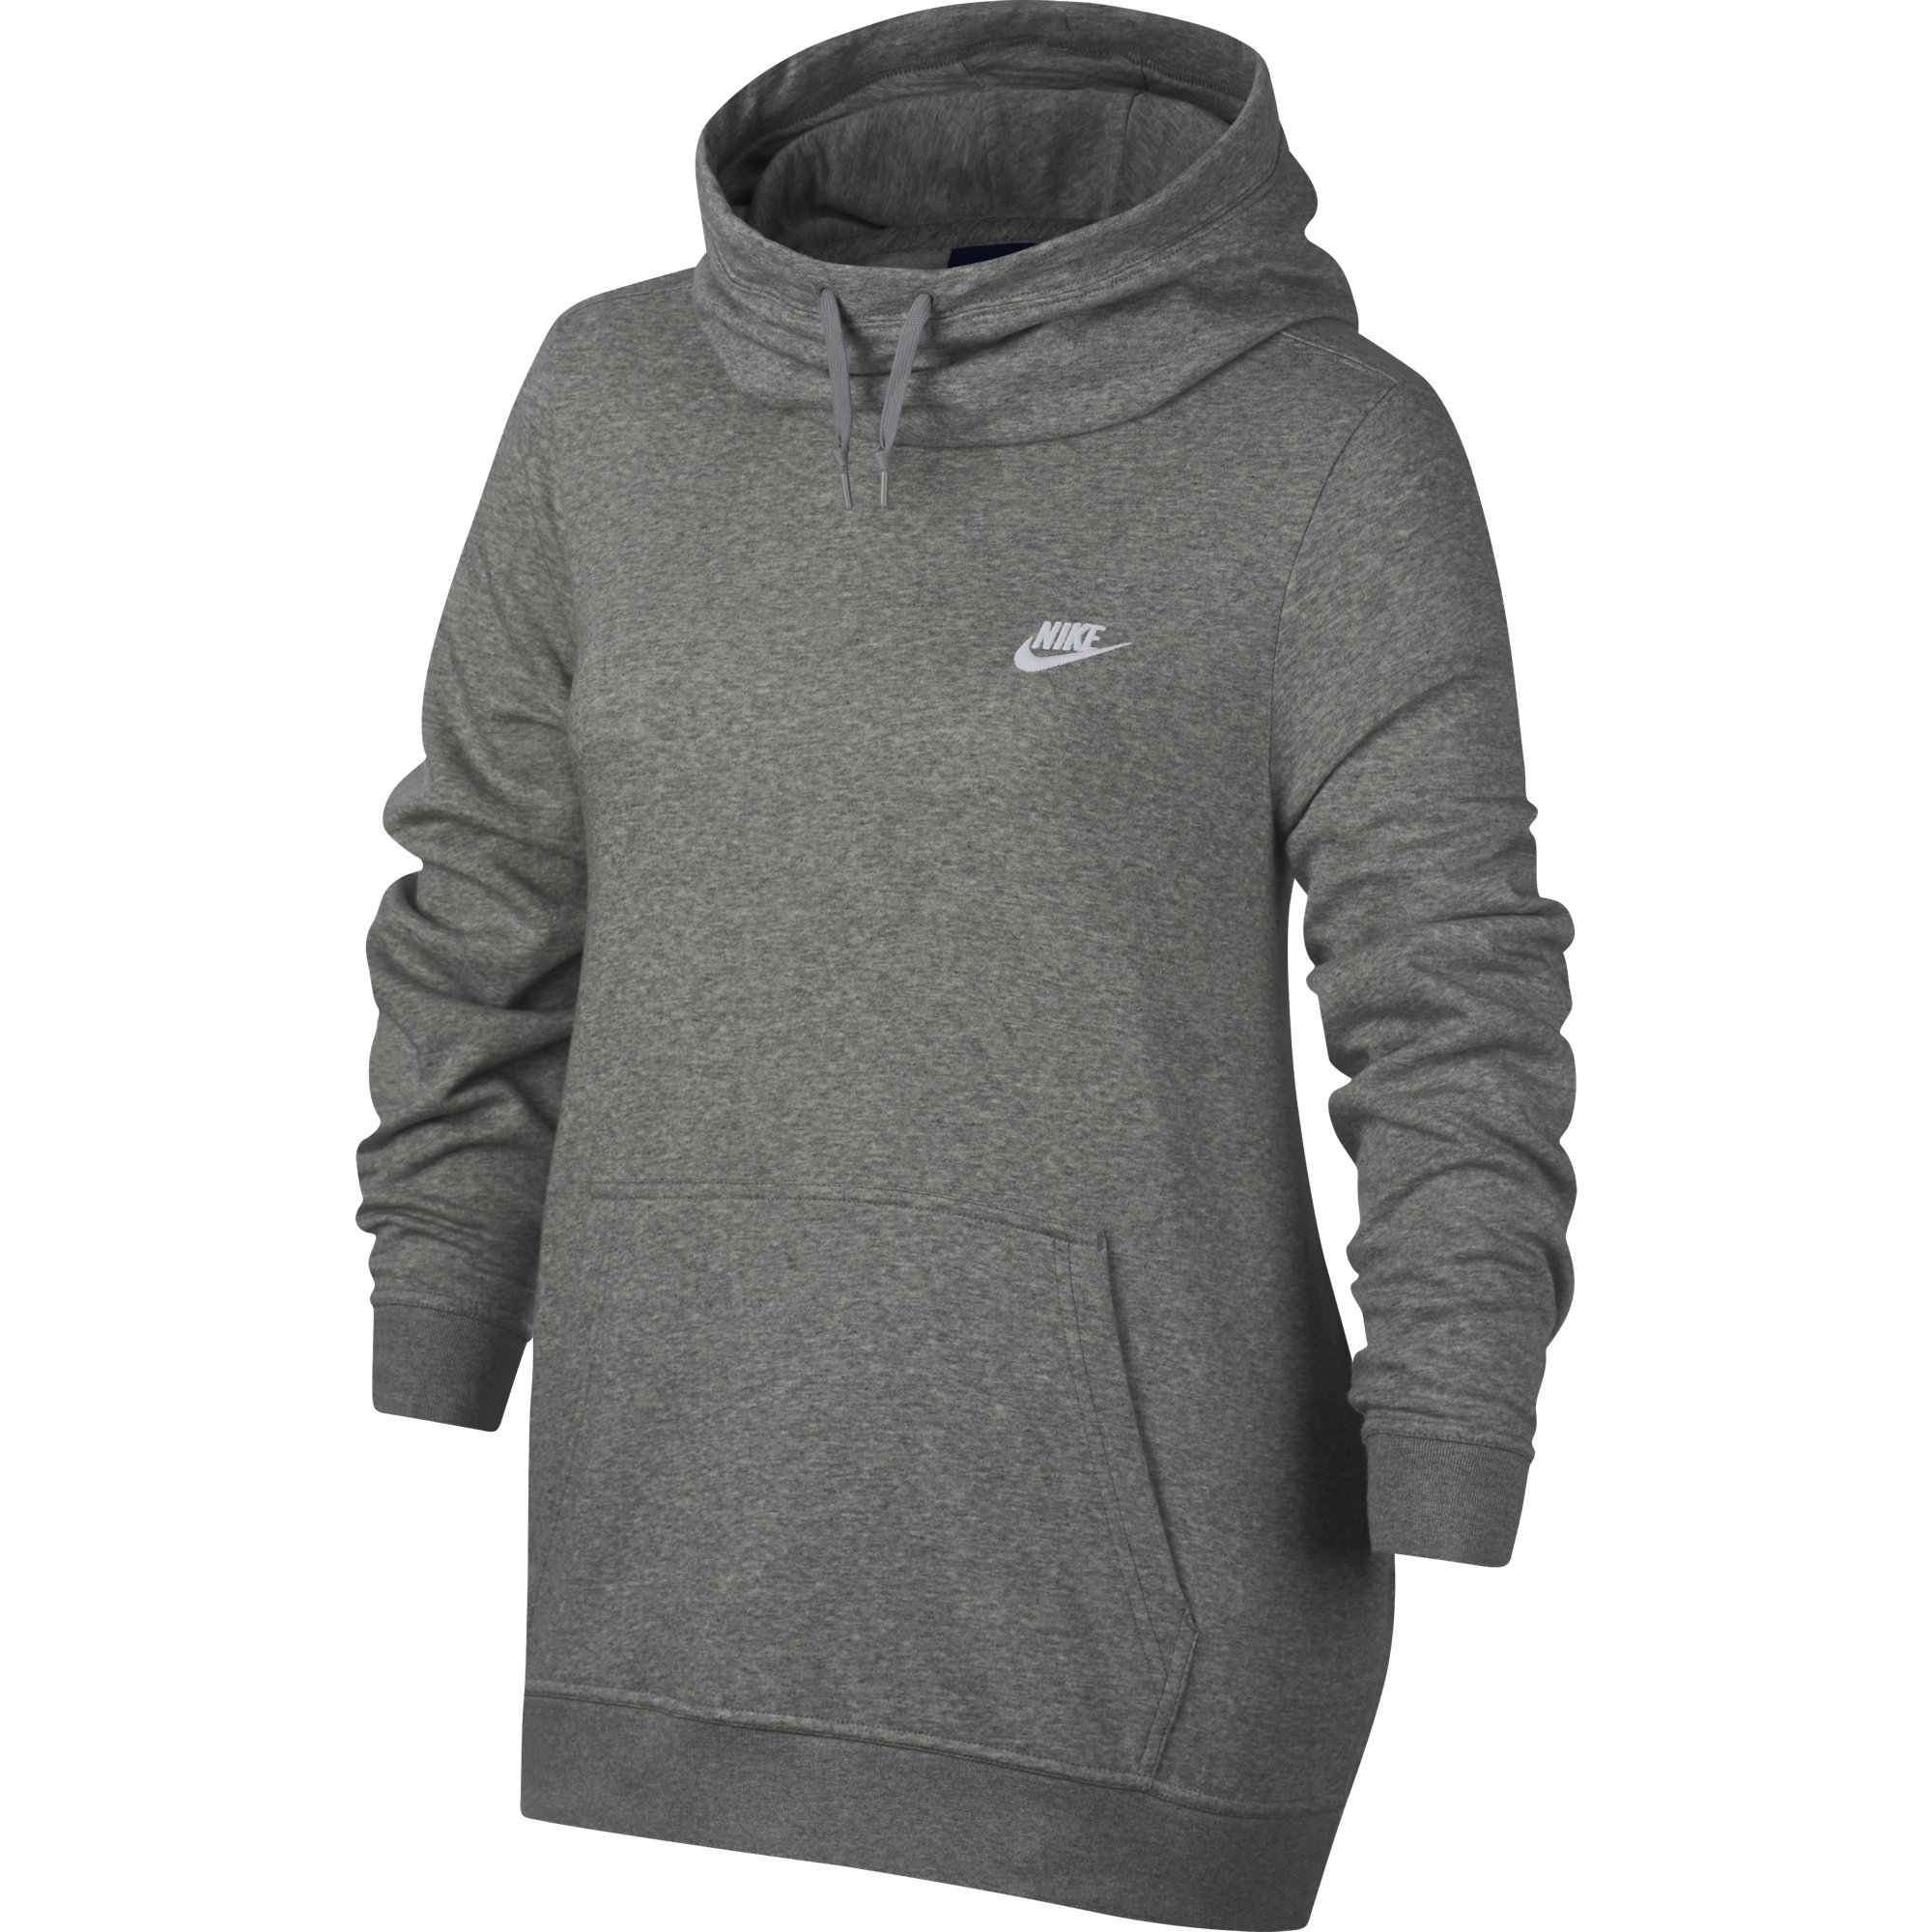 NIKE Sportswear Women's Plus Club Funnel-Neck Hoodie, Dark Grey Heather/Dark Grey Heather/White, 2X